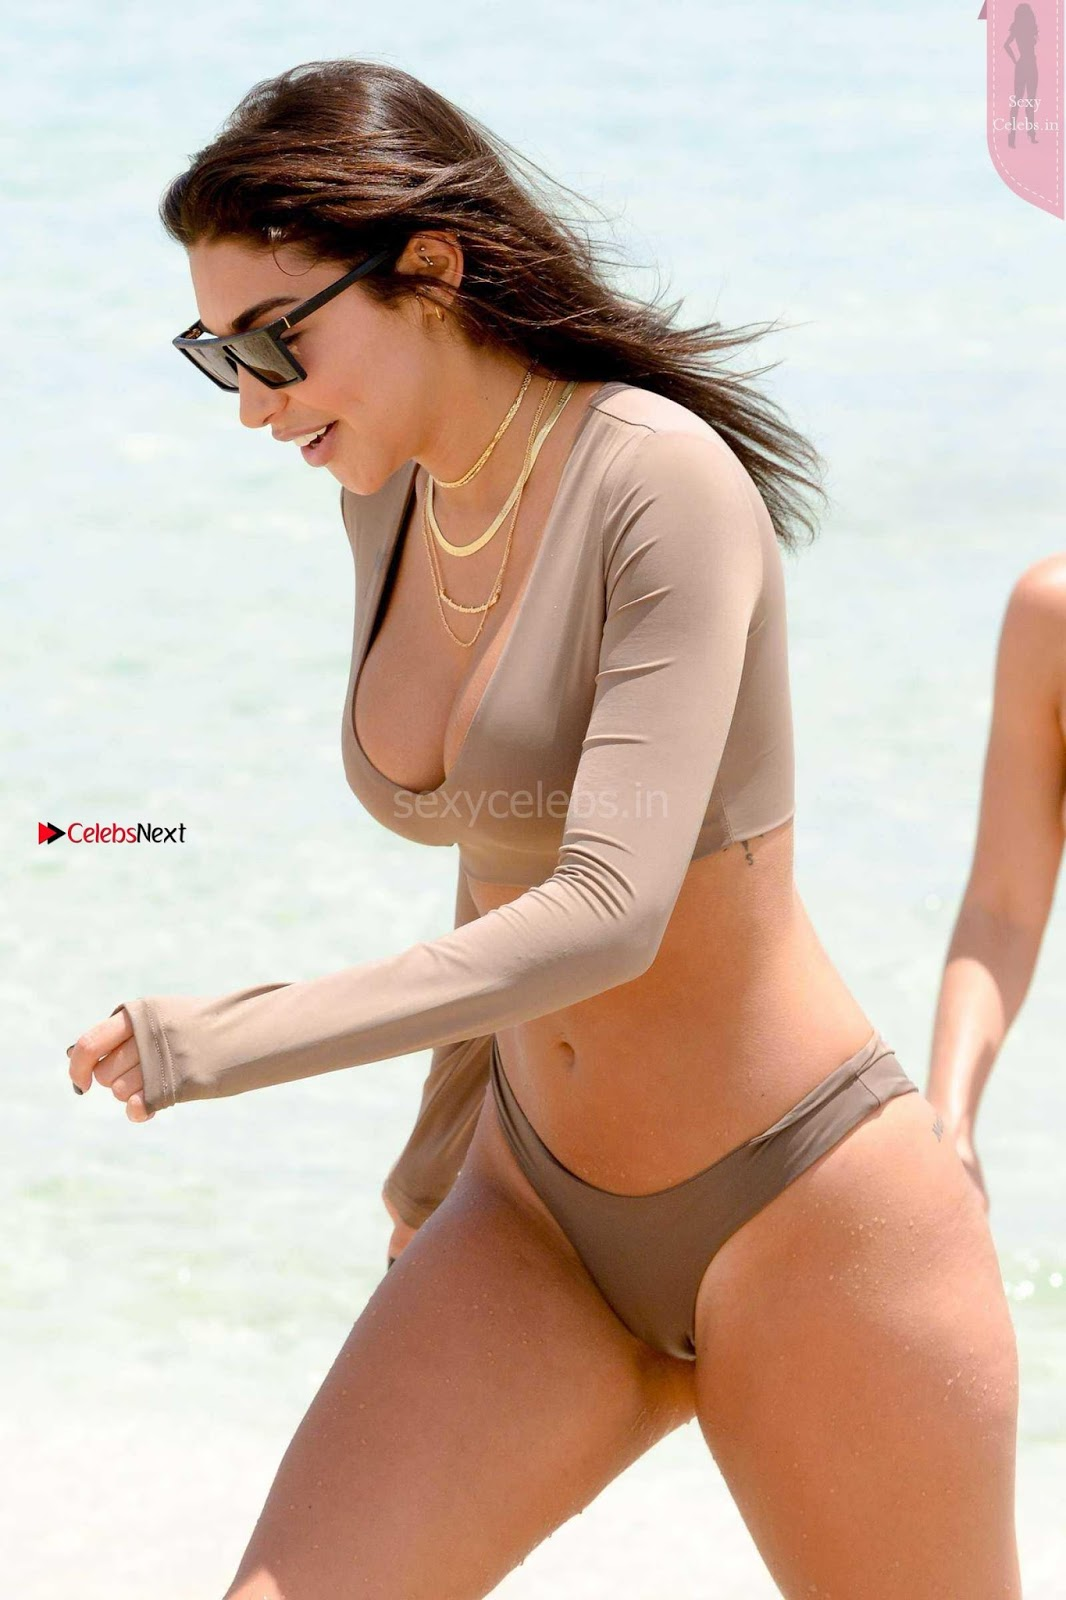 Chantel Jeffries in a nude colored Wet Bikini Sexy Tits Lovely Huge Ass WOW April 2017 Exclusive Candids